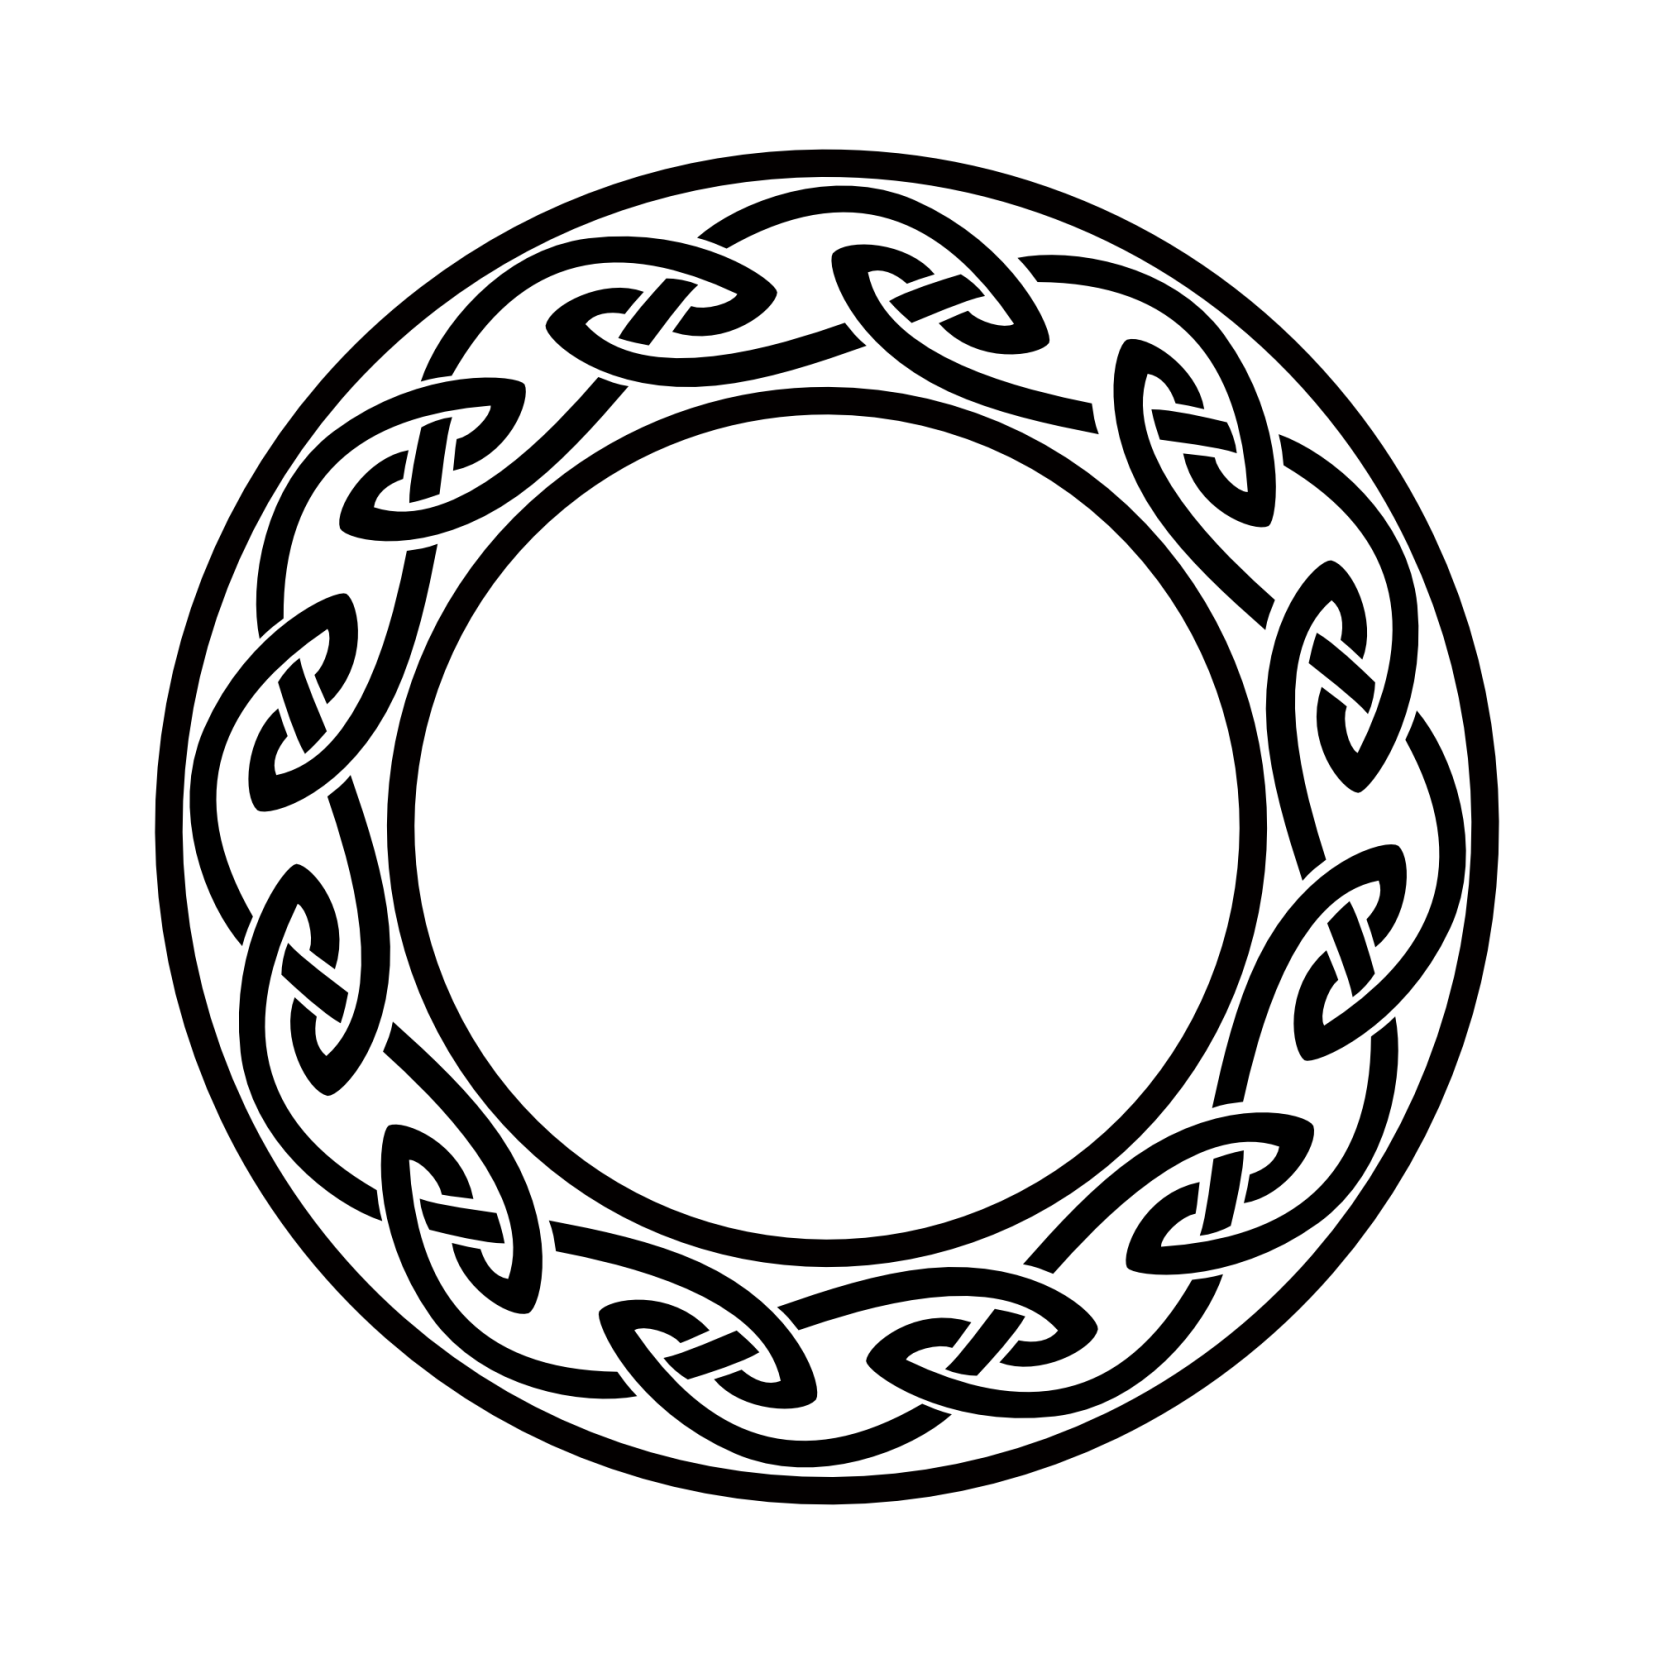 Circle Tattoos, Designs And Ideas : Page 6